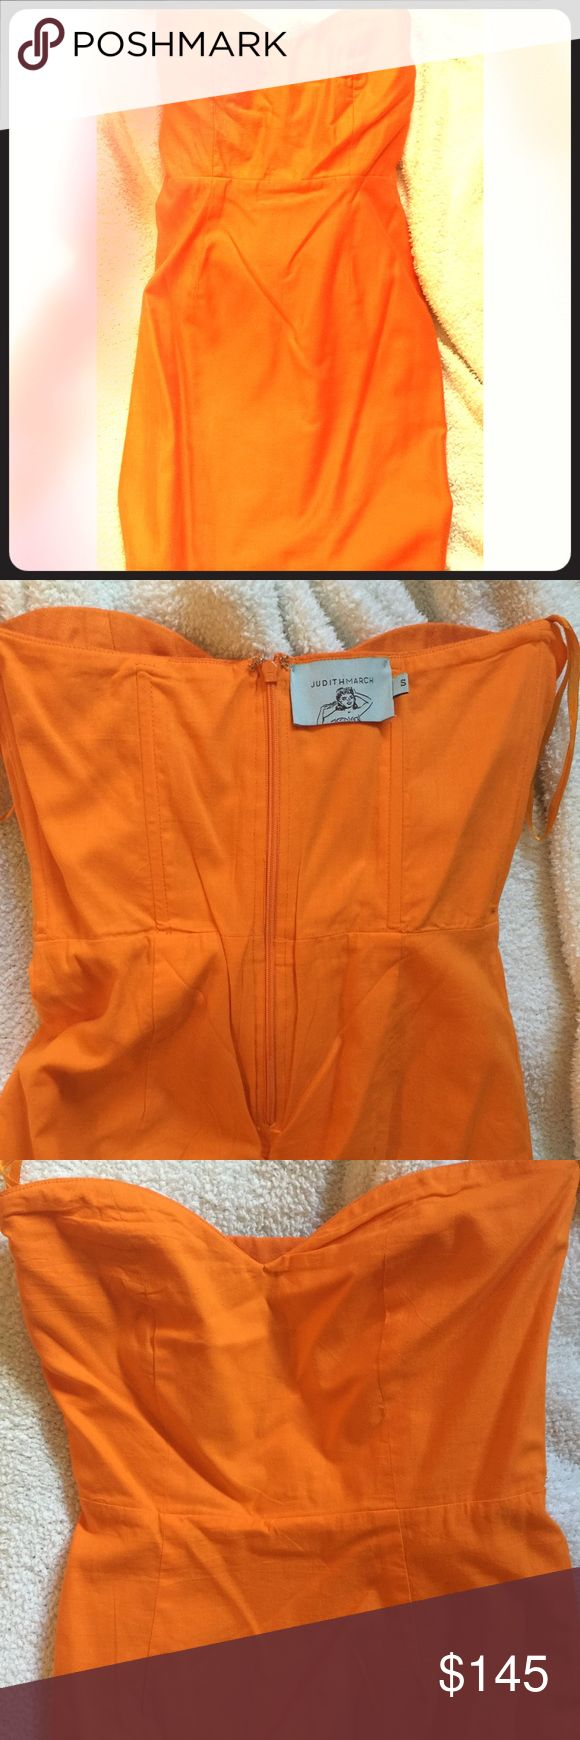 Strapless Orange cotton Judith March dress NWOT Stunning strapless orange cotton Judith March dress. High quality & impeccable design. Fully lined (shown inside out in 3rd pic to show quality of craftsmanship), boning, darts. This size S dress fits a smaller chest best. NWOT. Judith March Dresses Strapless